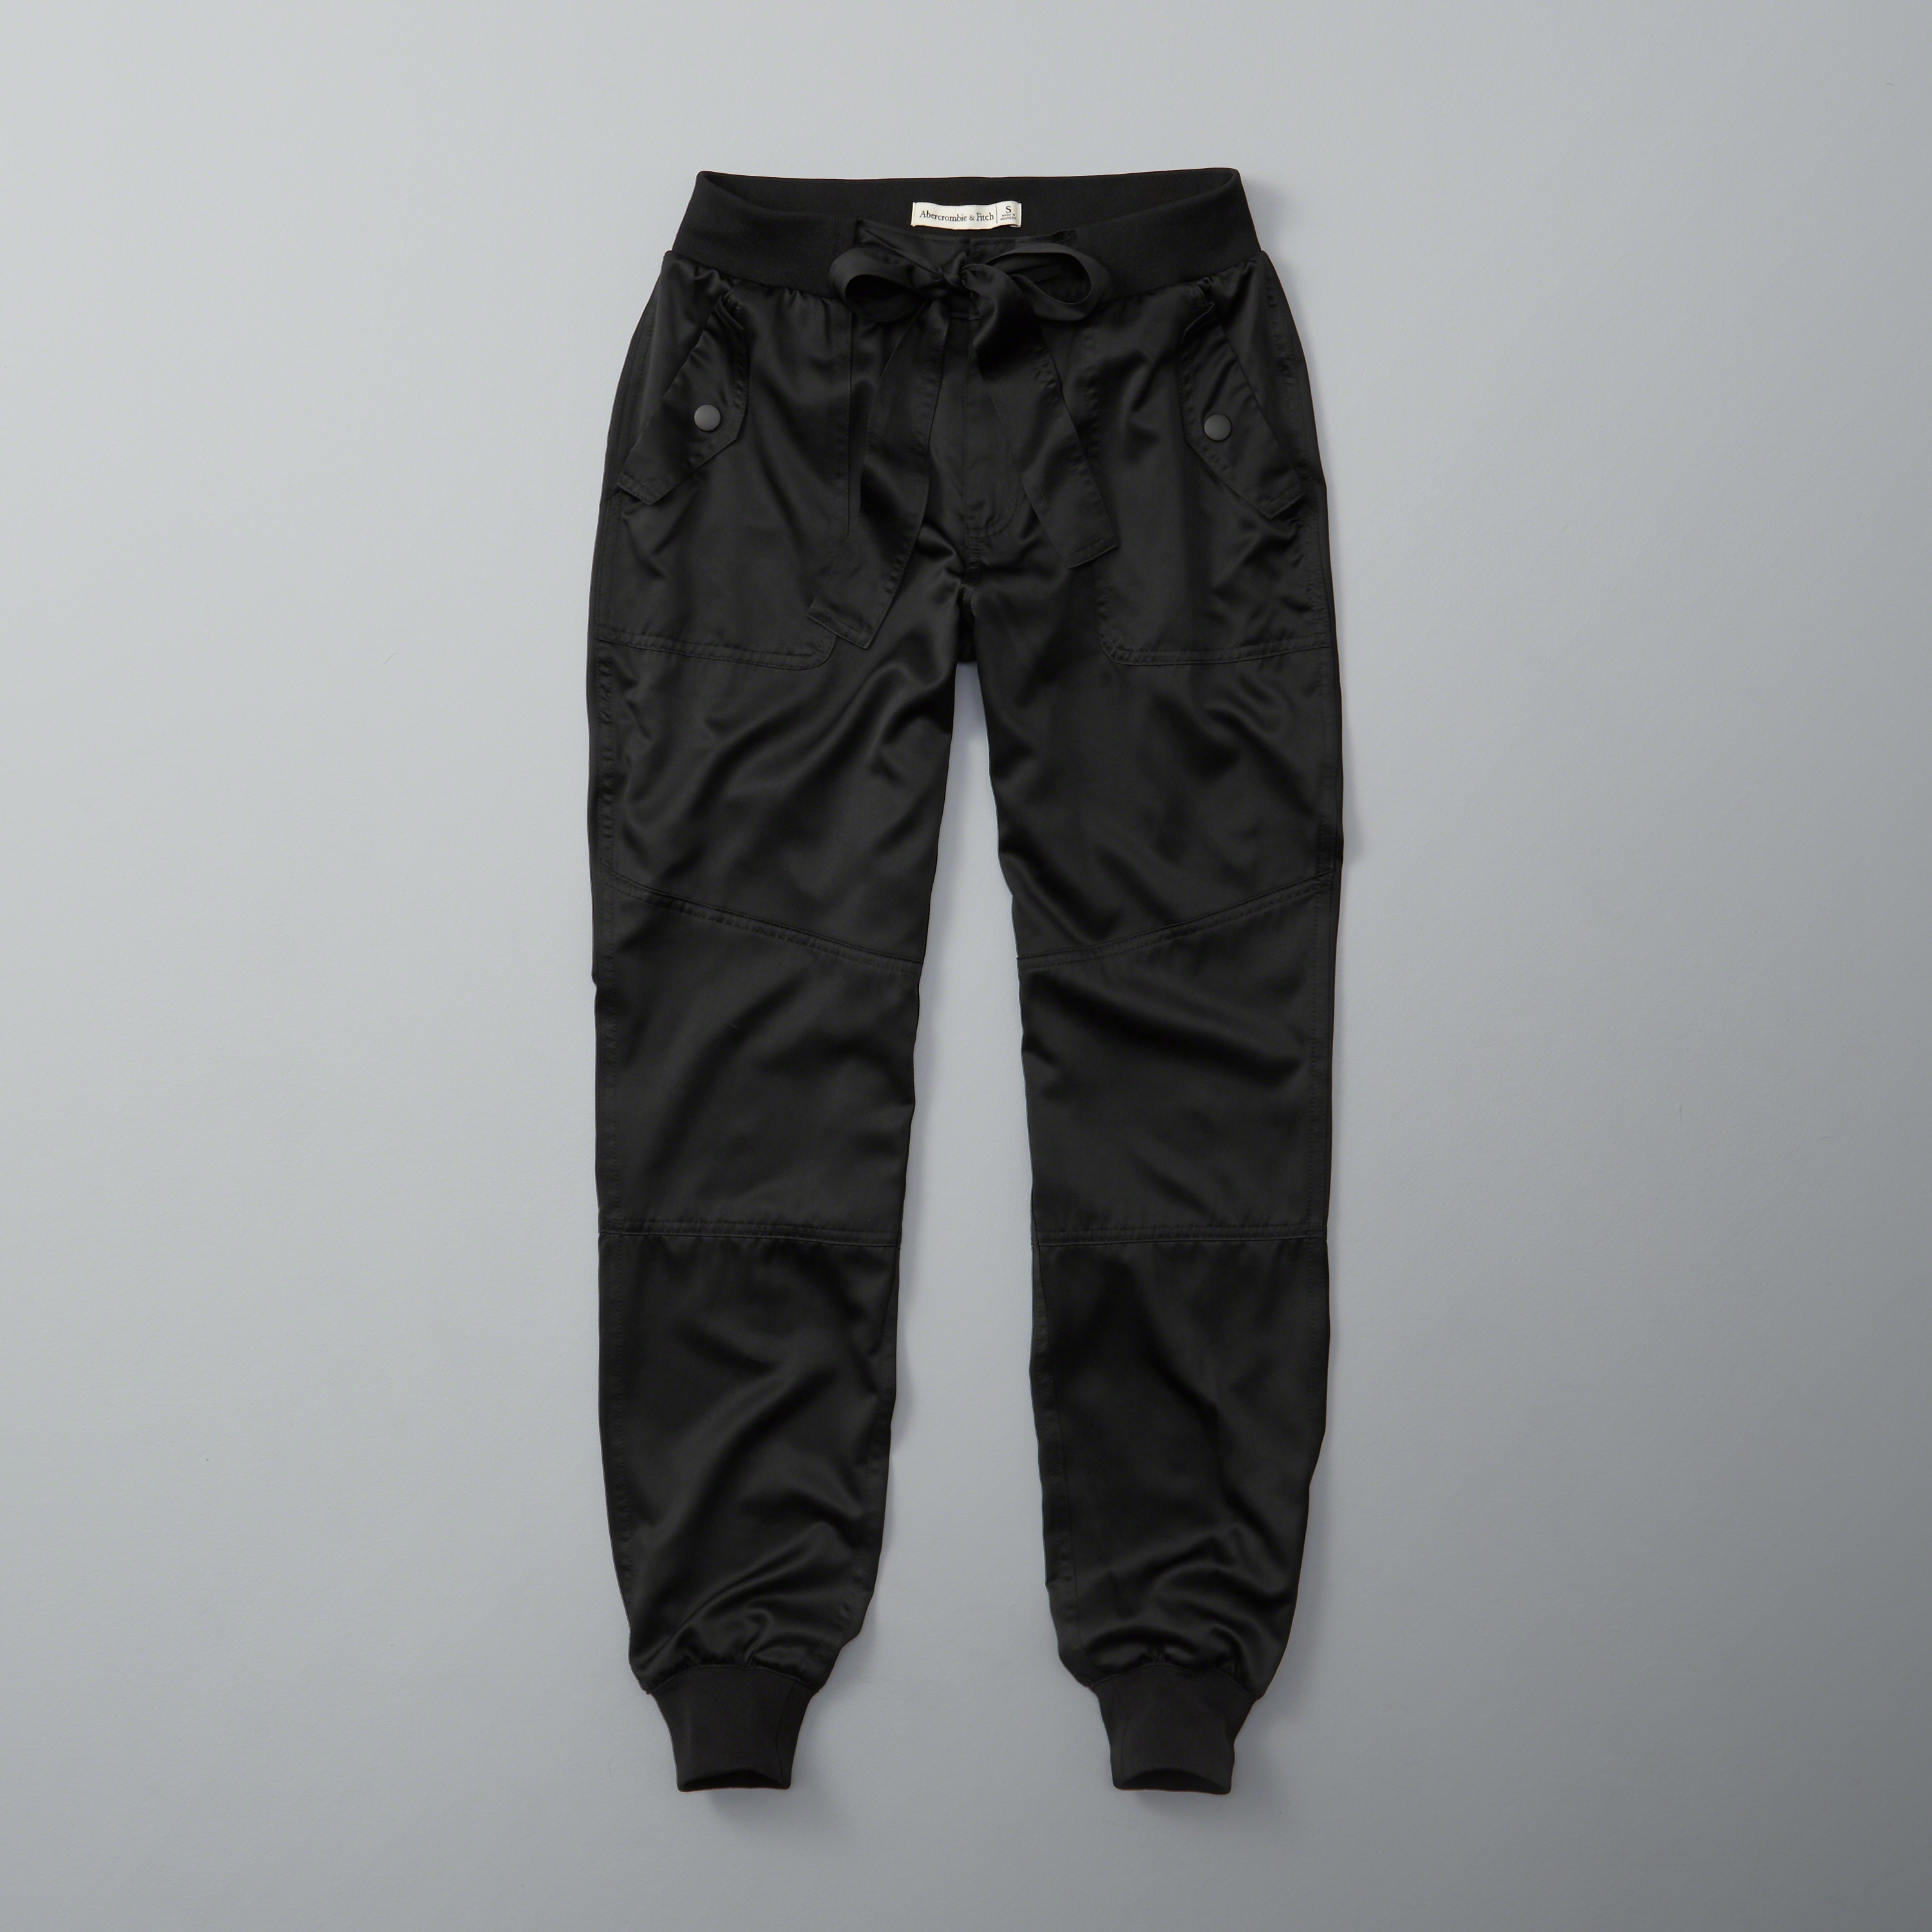 Abercrombie Fitch Accessories Abercrombie Fitch Womens: Abercrombie & Fitch Satin Joggers In Black